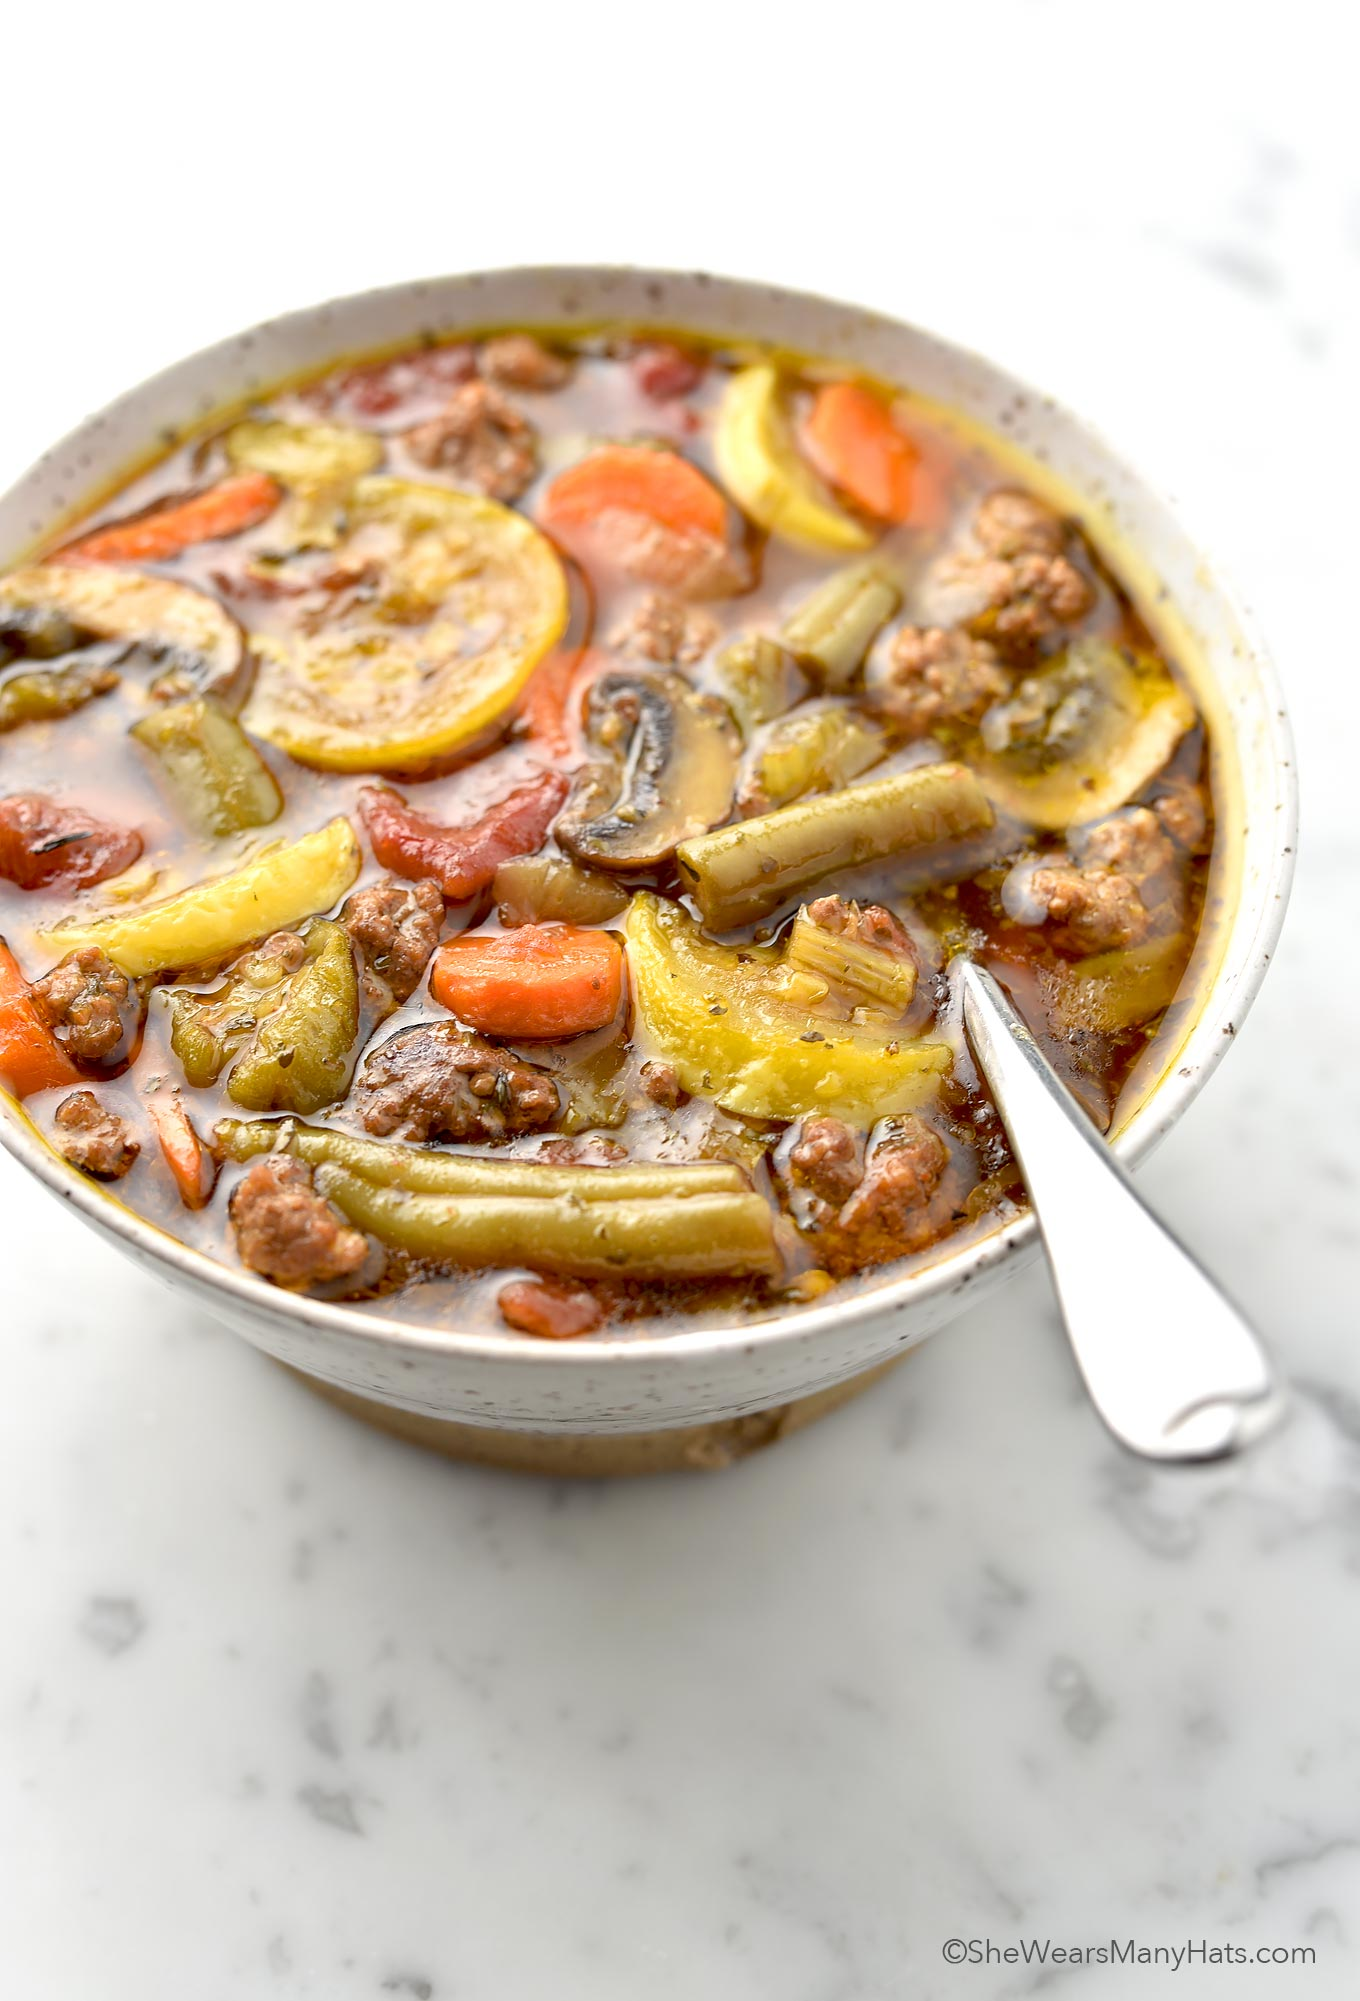 Vegetable Beef Soup Recipe | shewearsmanyhats.com